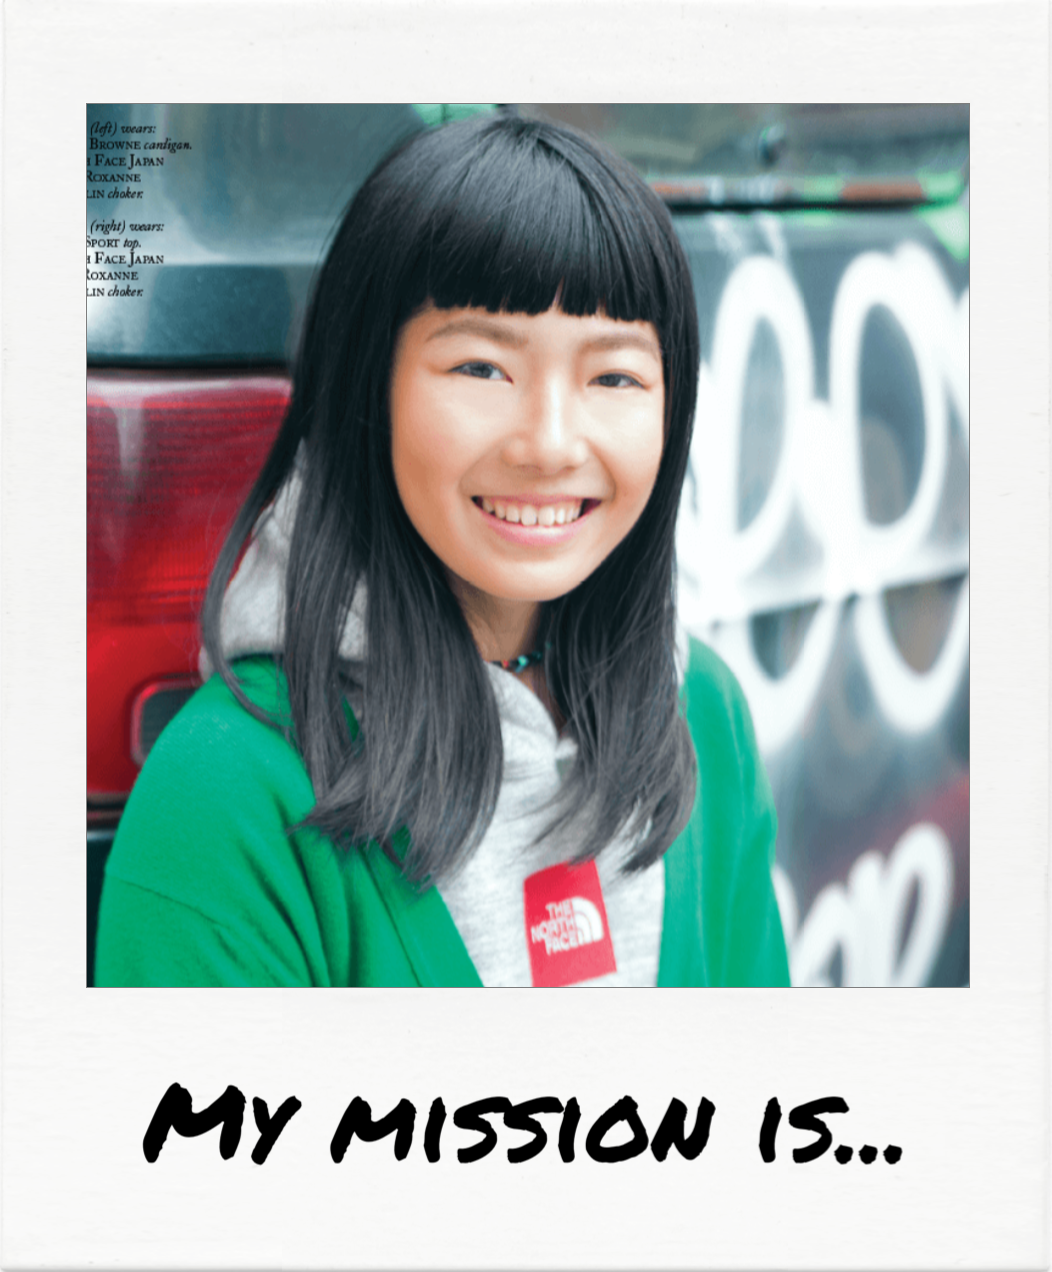 """... is to become the best rock climber and to inspire others to chase their dreams."" - Ashima Shiraishi"